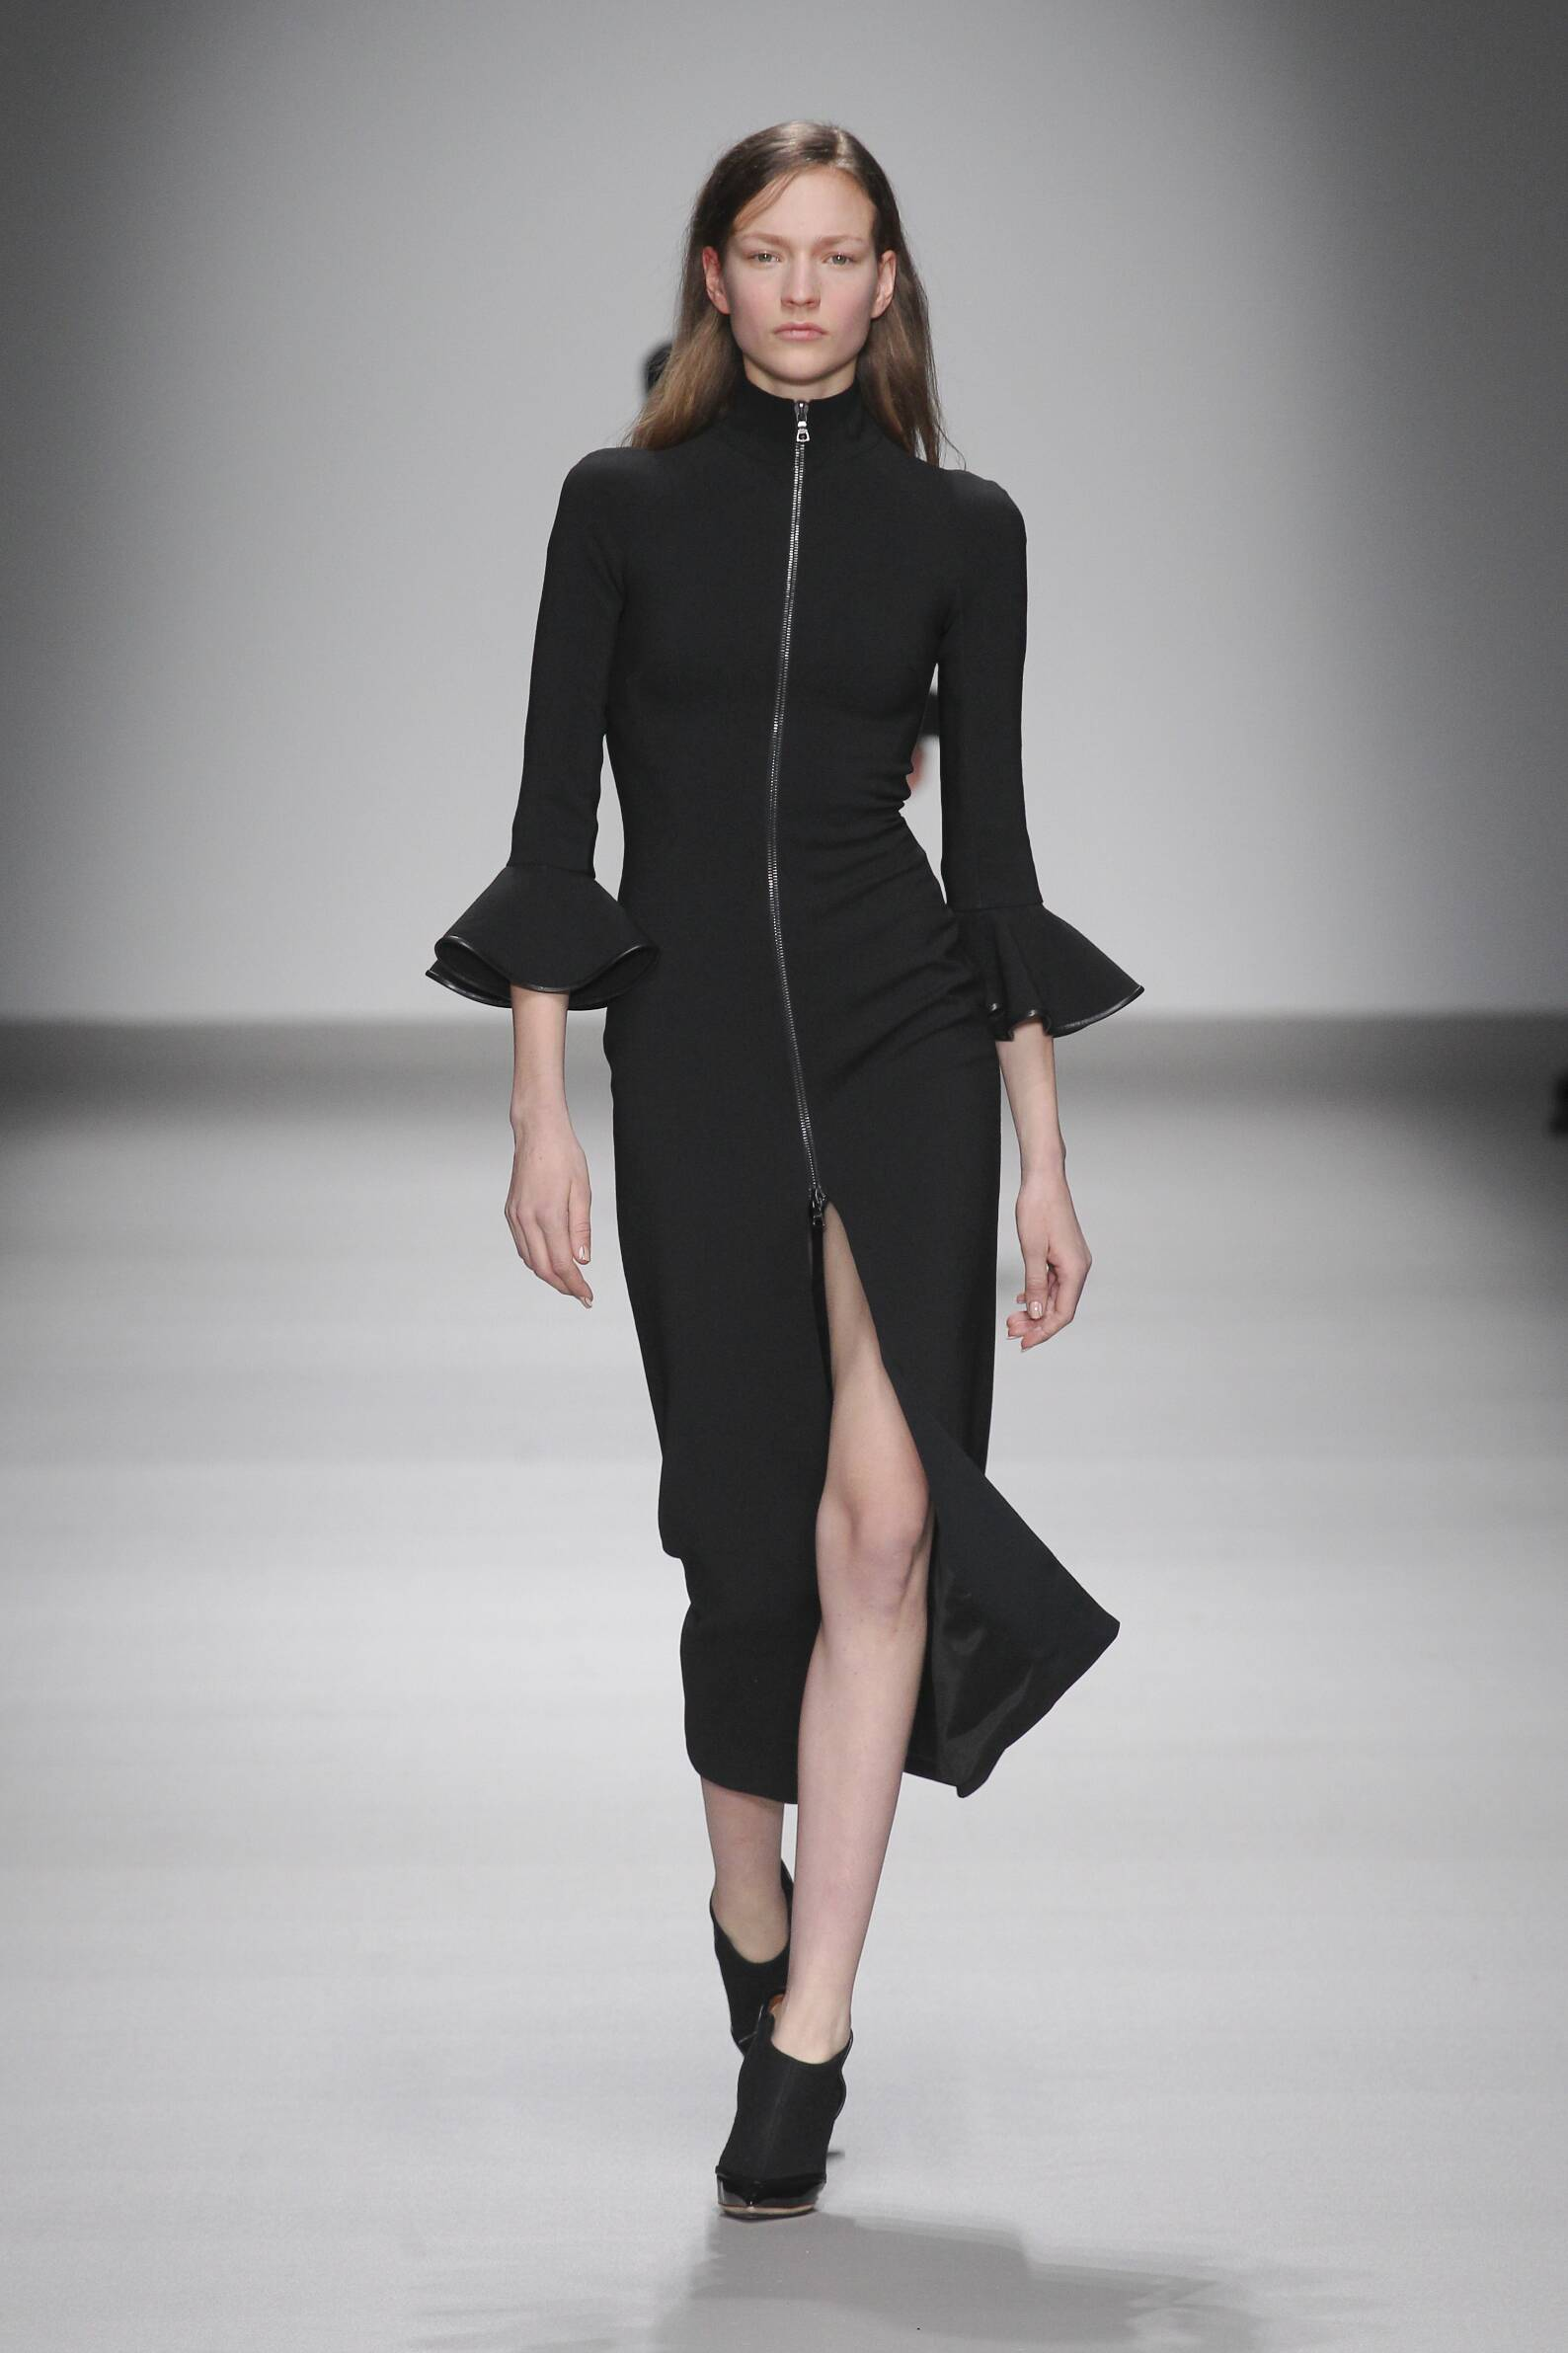 Fall Fashion Woman David Koma Collection